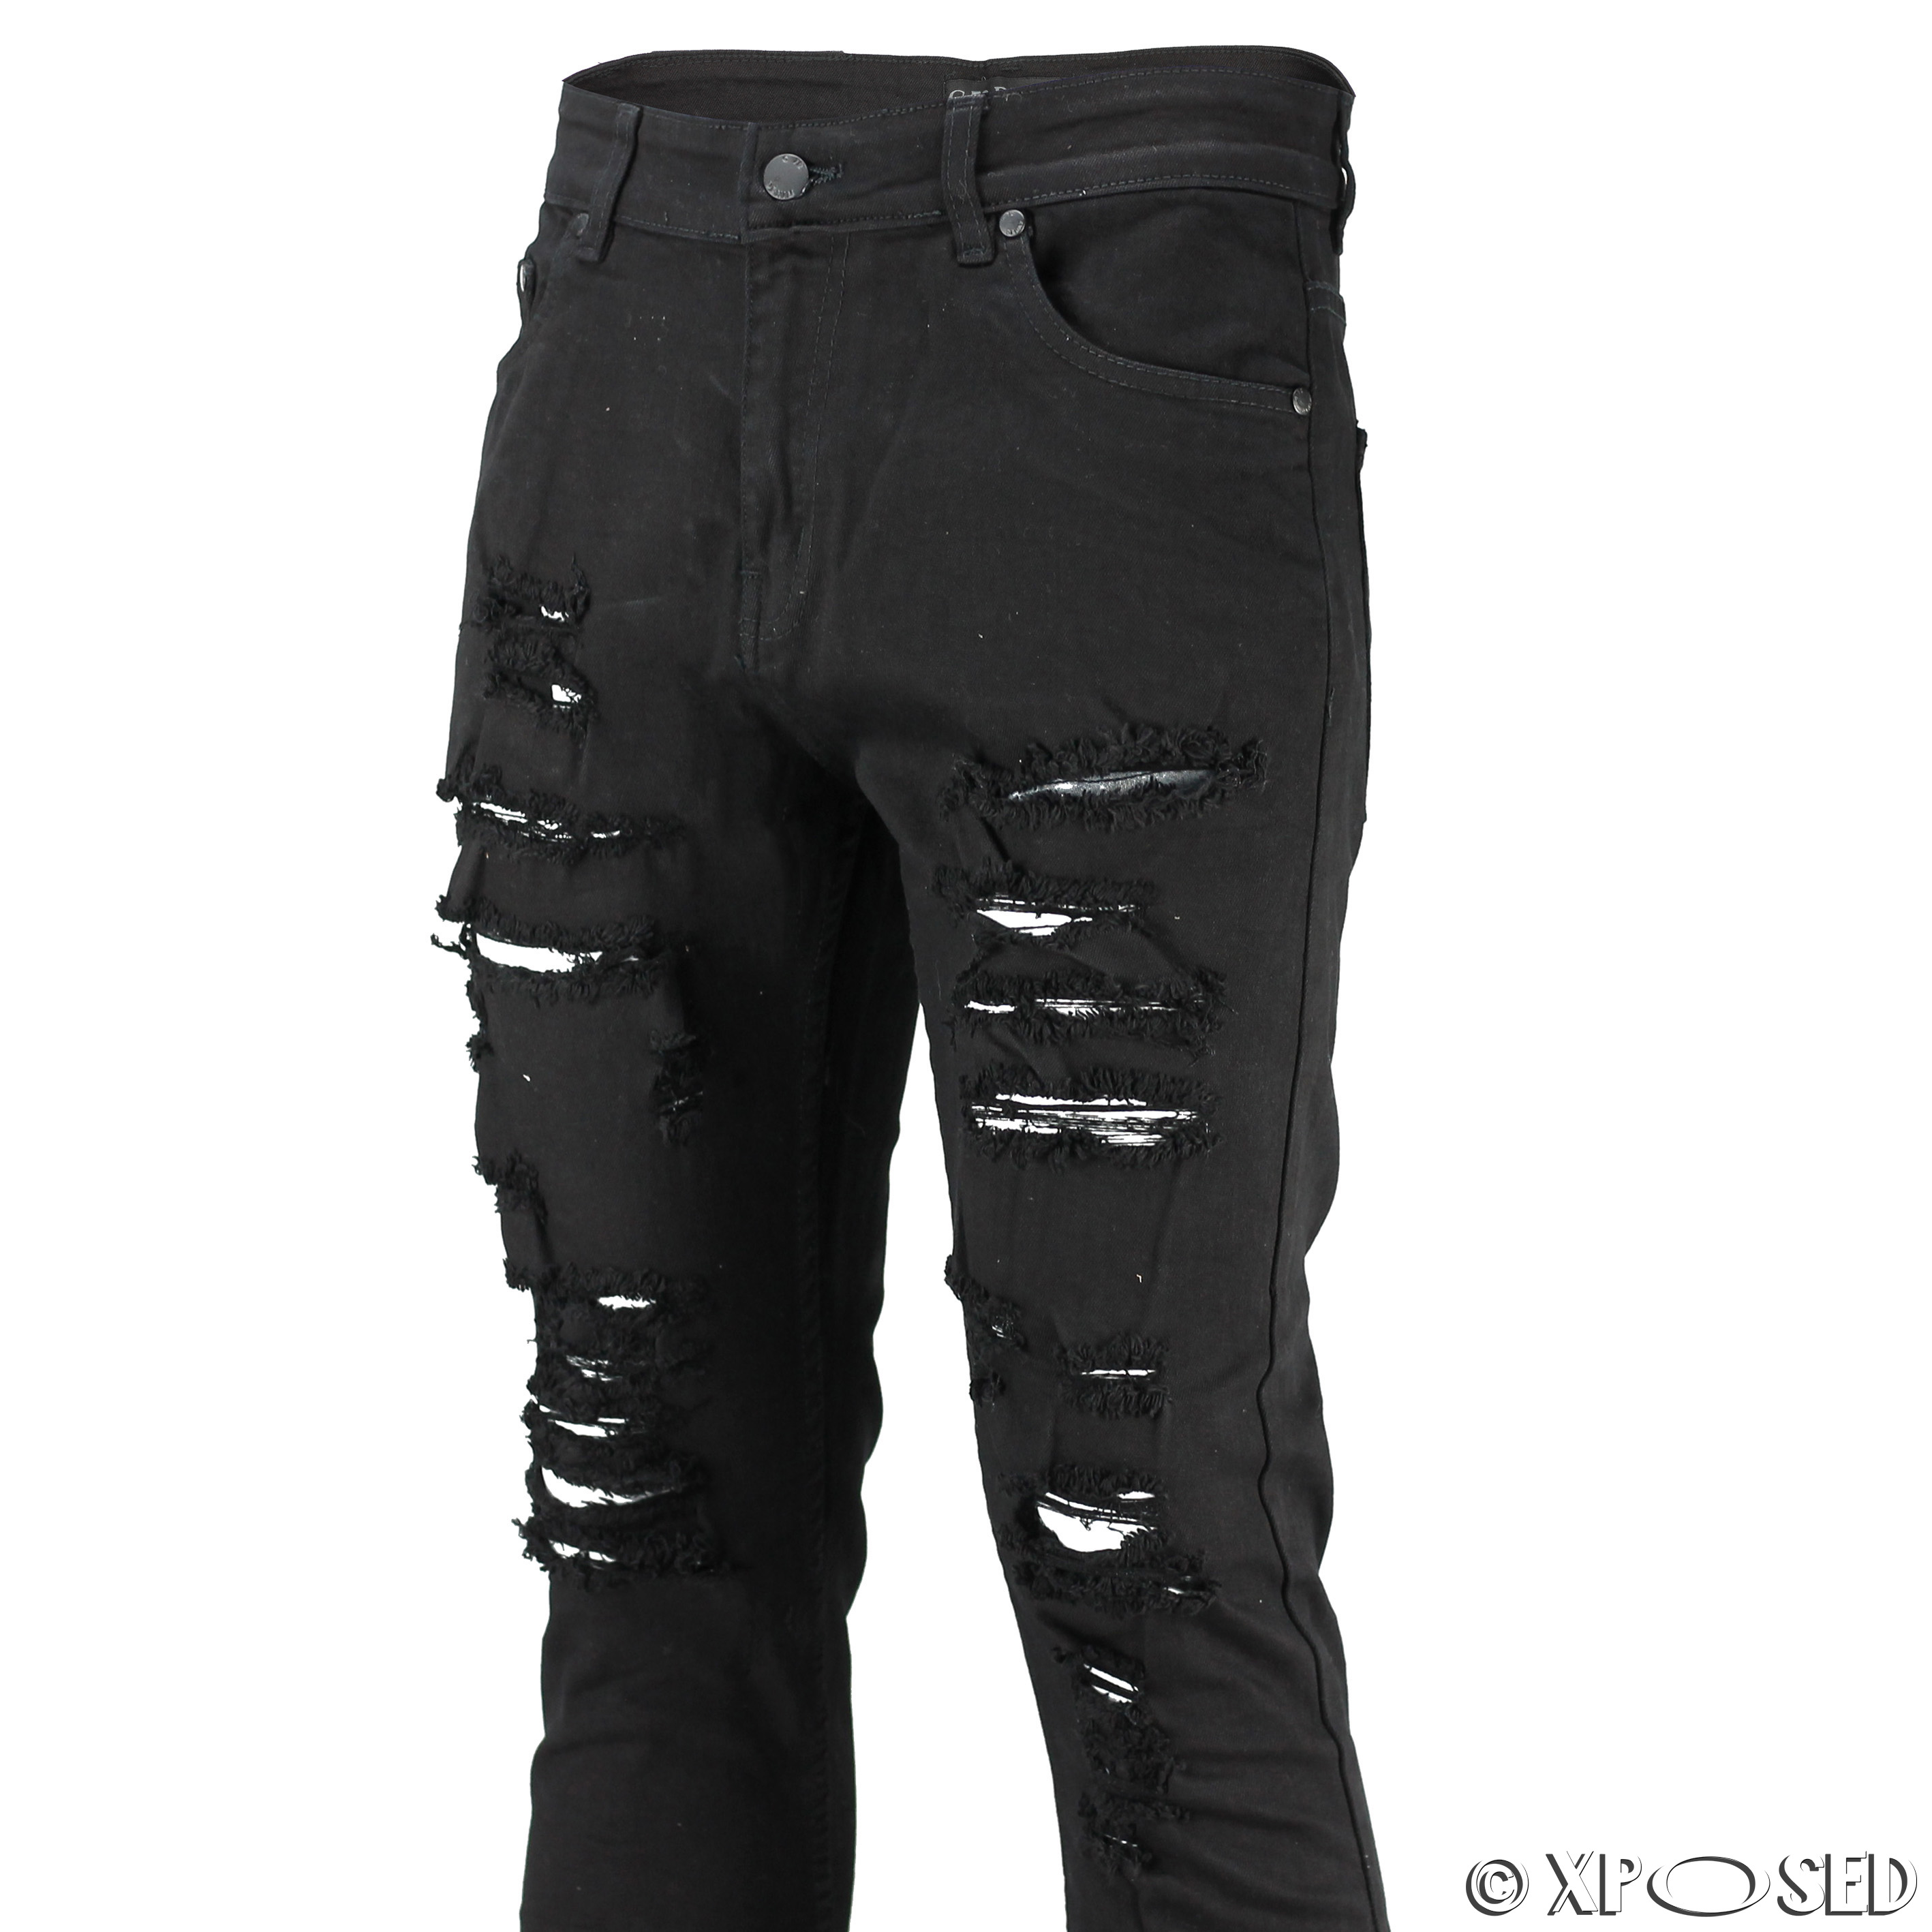 Discover our range of ripped jeans for men at ASOS. Our men's ripped jeans collection is in skinny fit, destroyed & torn styles in a variety of denim hues. Dr Denim Ira Skinny Ripped Dungaree Jeans in Black. £ ASOS DESIGN super skinny jeans with knee rips. £ ASOS DESIGN tapered jeans in oz in washed black with heavy rips.